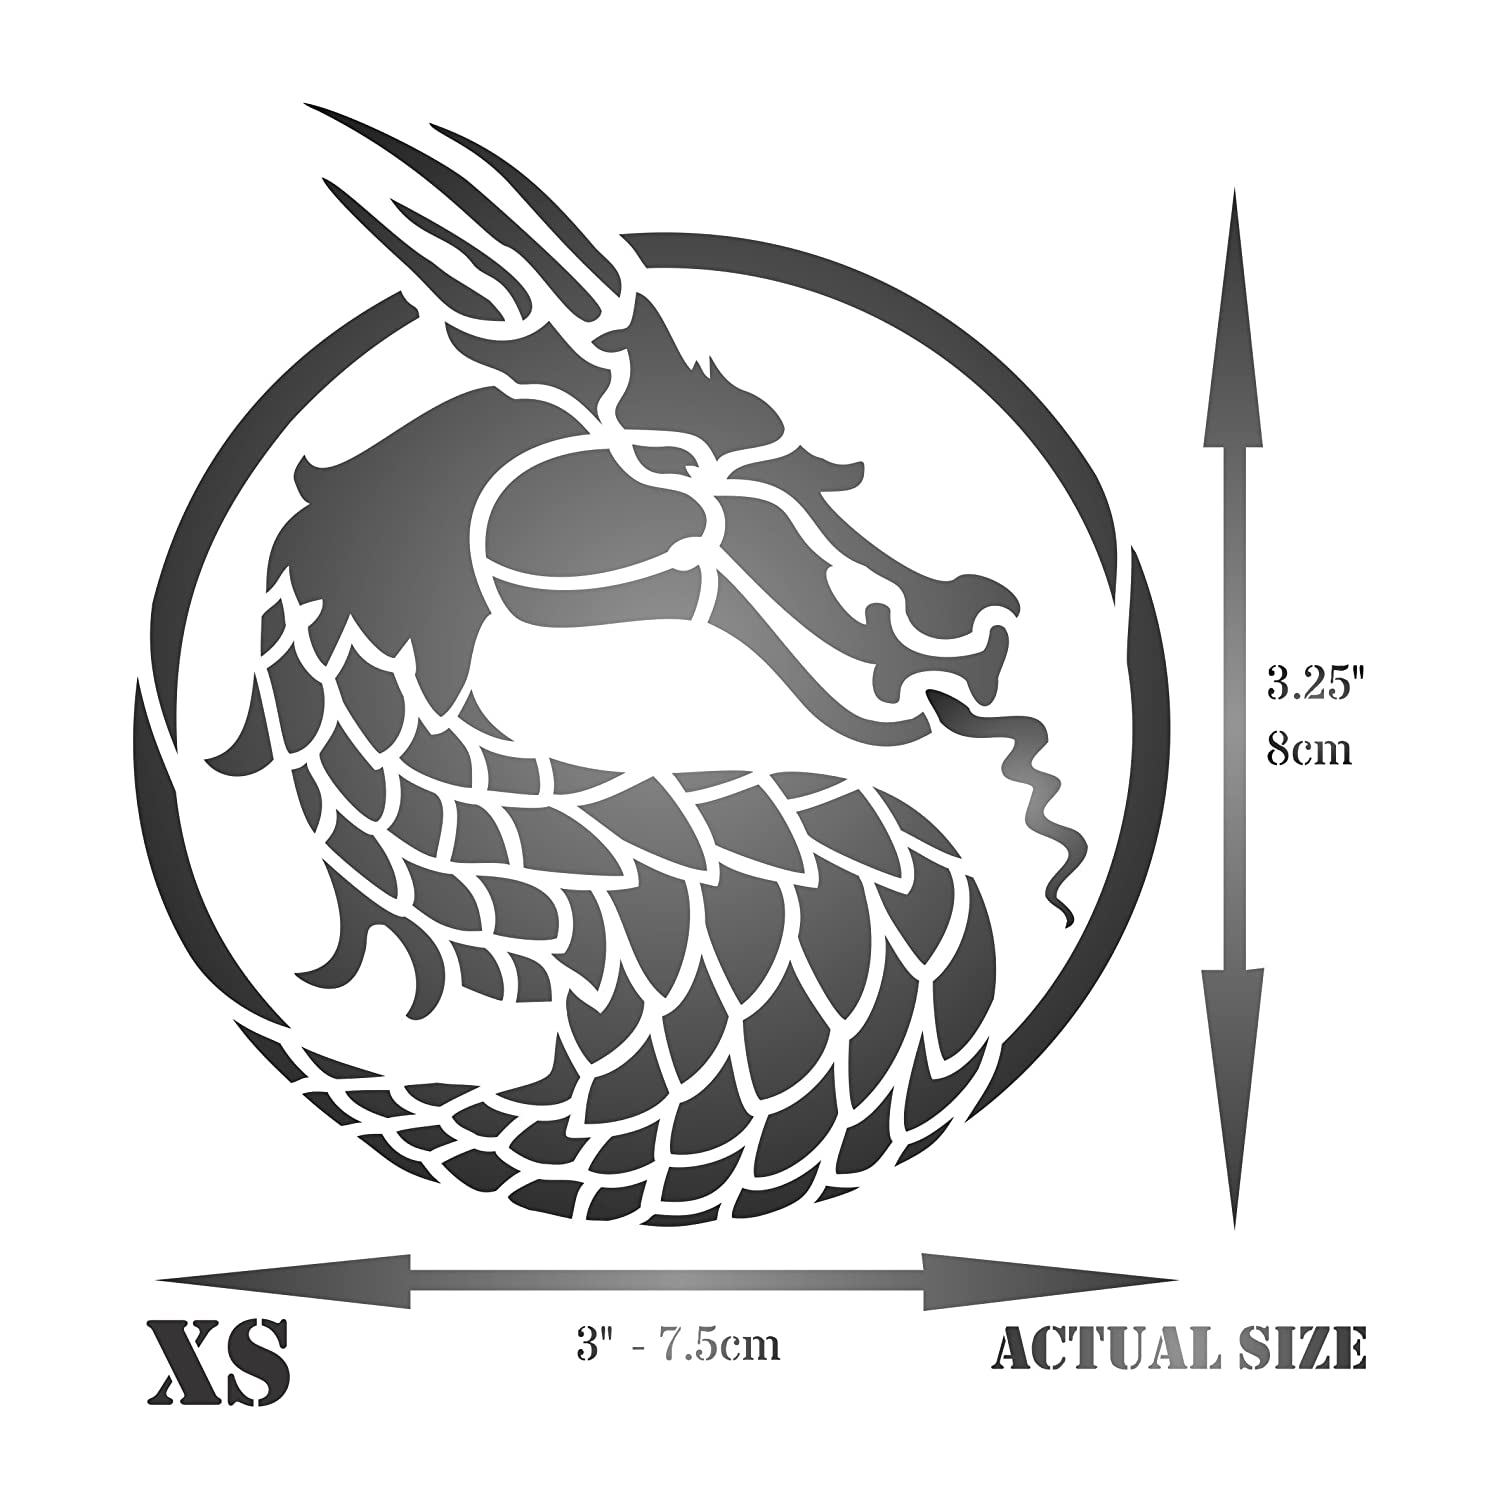 - Reusable Asian Oriental Chinese Japanese Wall Stencil Template Use on Paper Projects Scrapbook Journal Walls Floors Fabric Furniture Glass Wood etc. Dragon Head Stencil 7.5 x 8cm XS